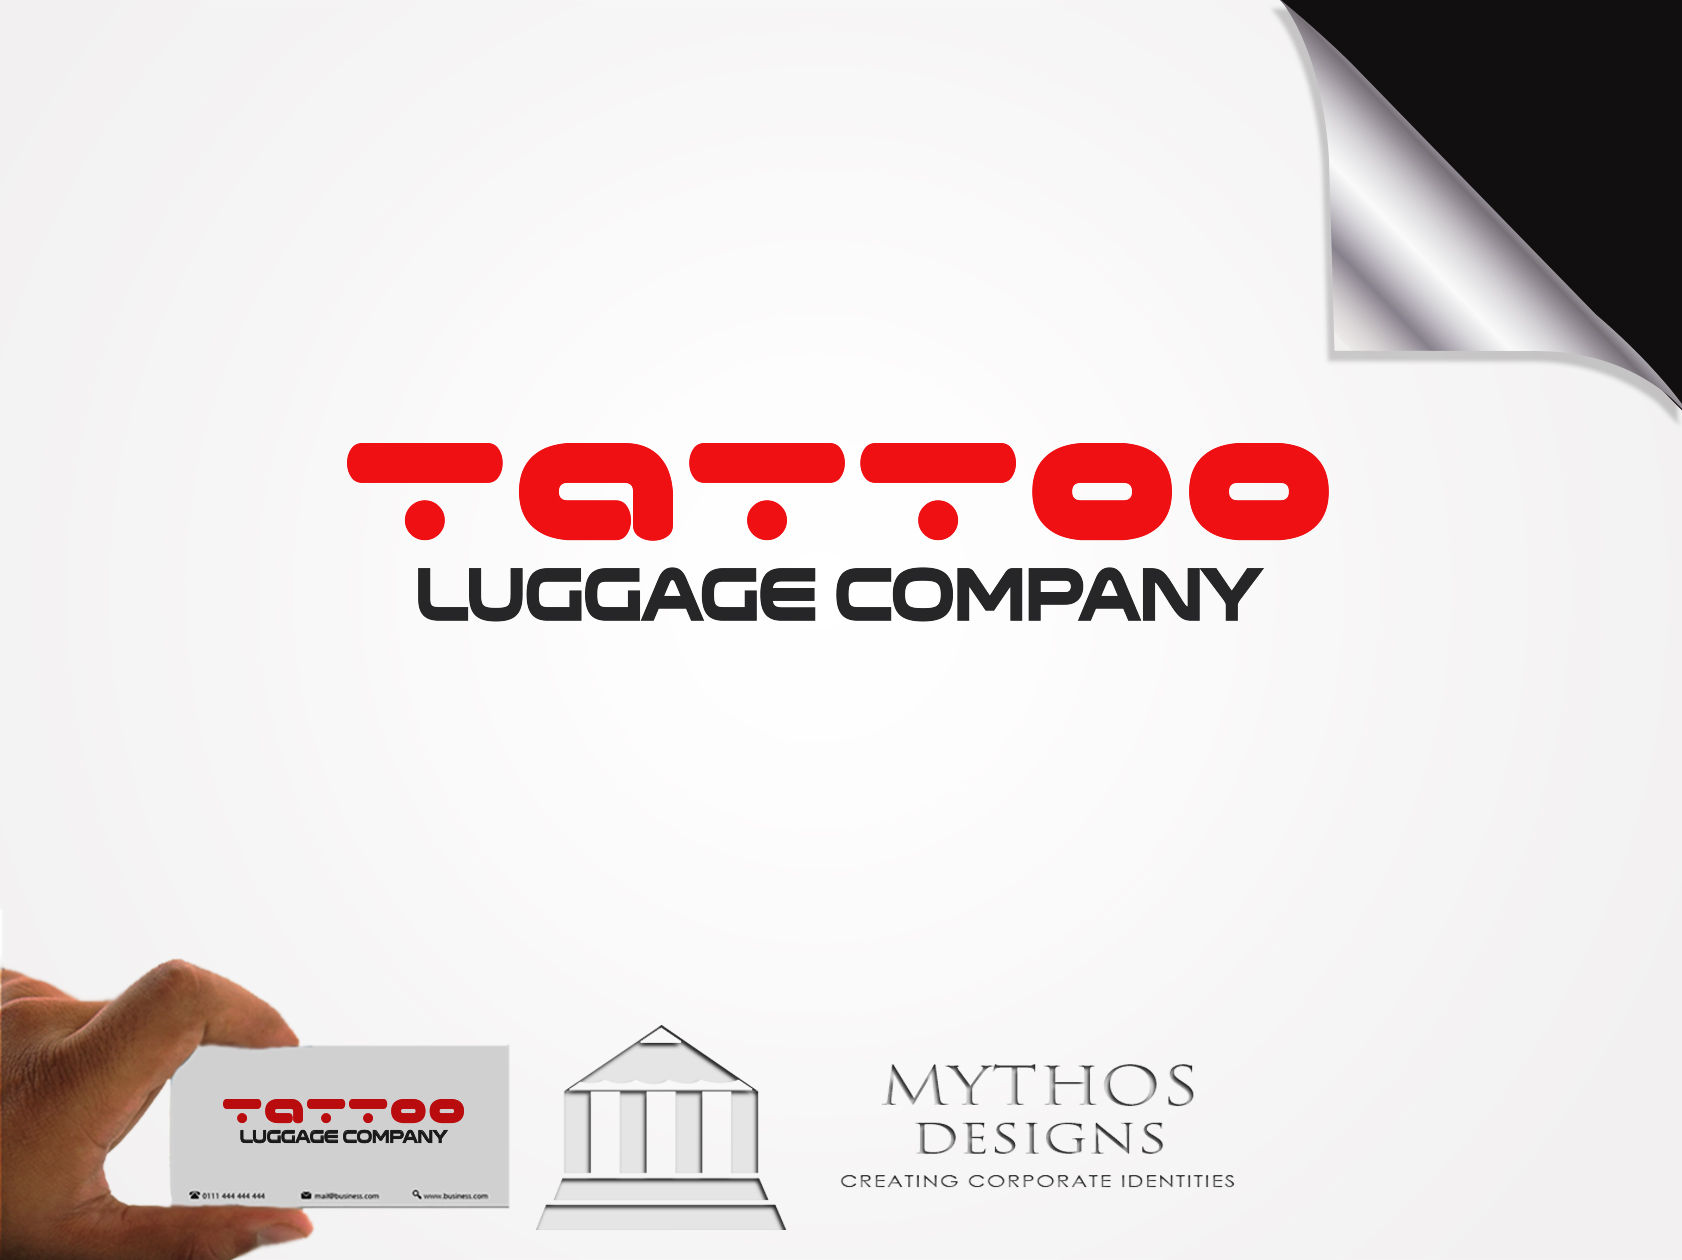 Logo Design by Mythos Designs - Entry No. 140 in the Logo Design Contest Artistic Logo Design for Tattoo Luggage Company.